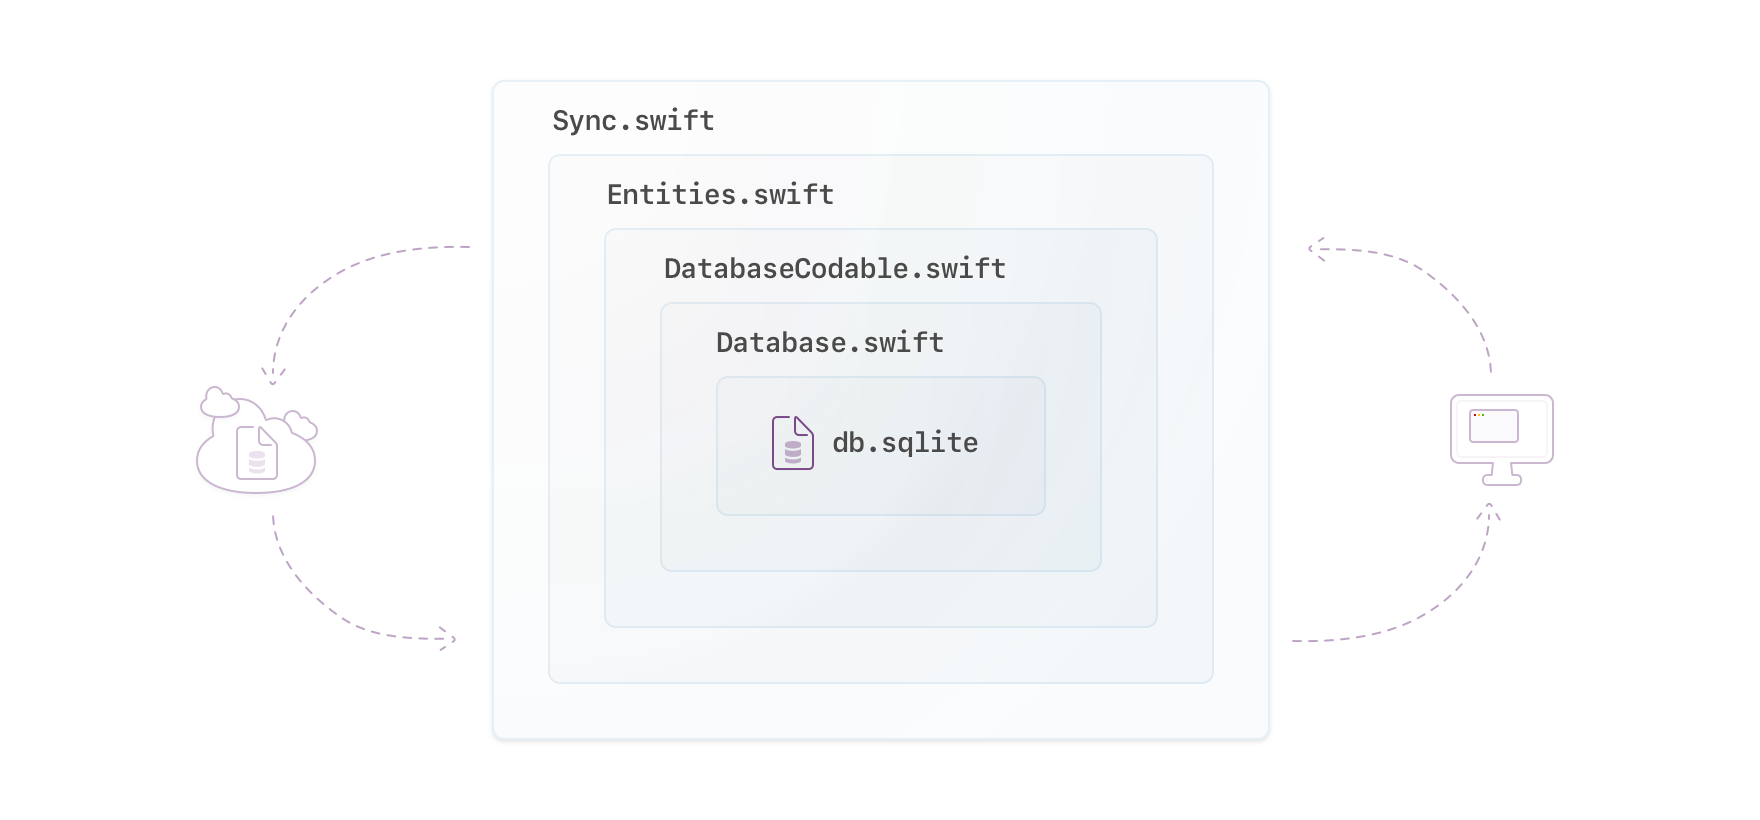 Illustration of a cloud, a computer's desktop with a window visible, and between a nested set of squares representing code concepts (from outside, in) listing Sync.swift, Entities.swift, DatabaseCodable.swift, Database.swift, and db.sqlite representing the local database file on a device